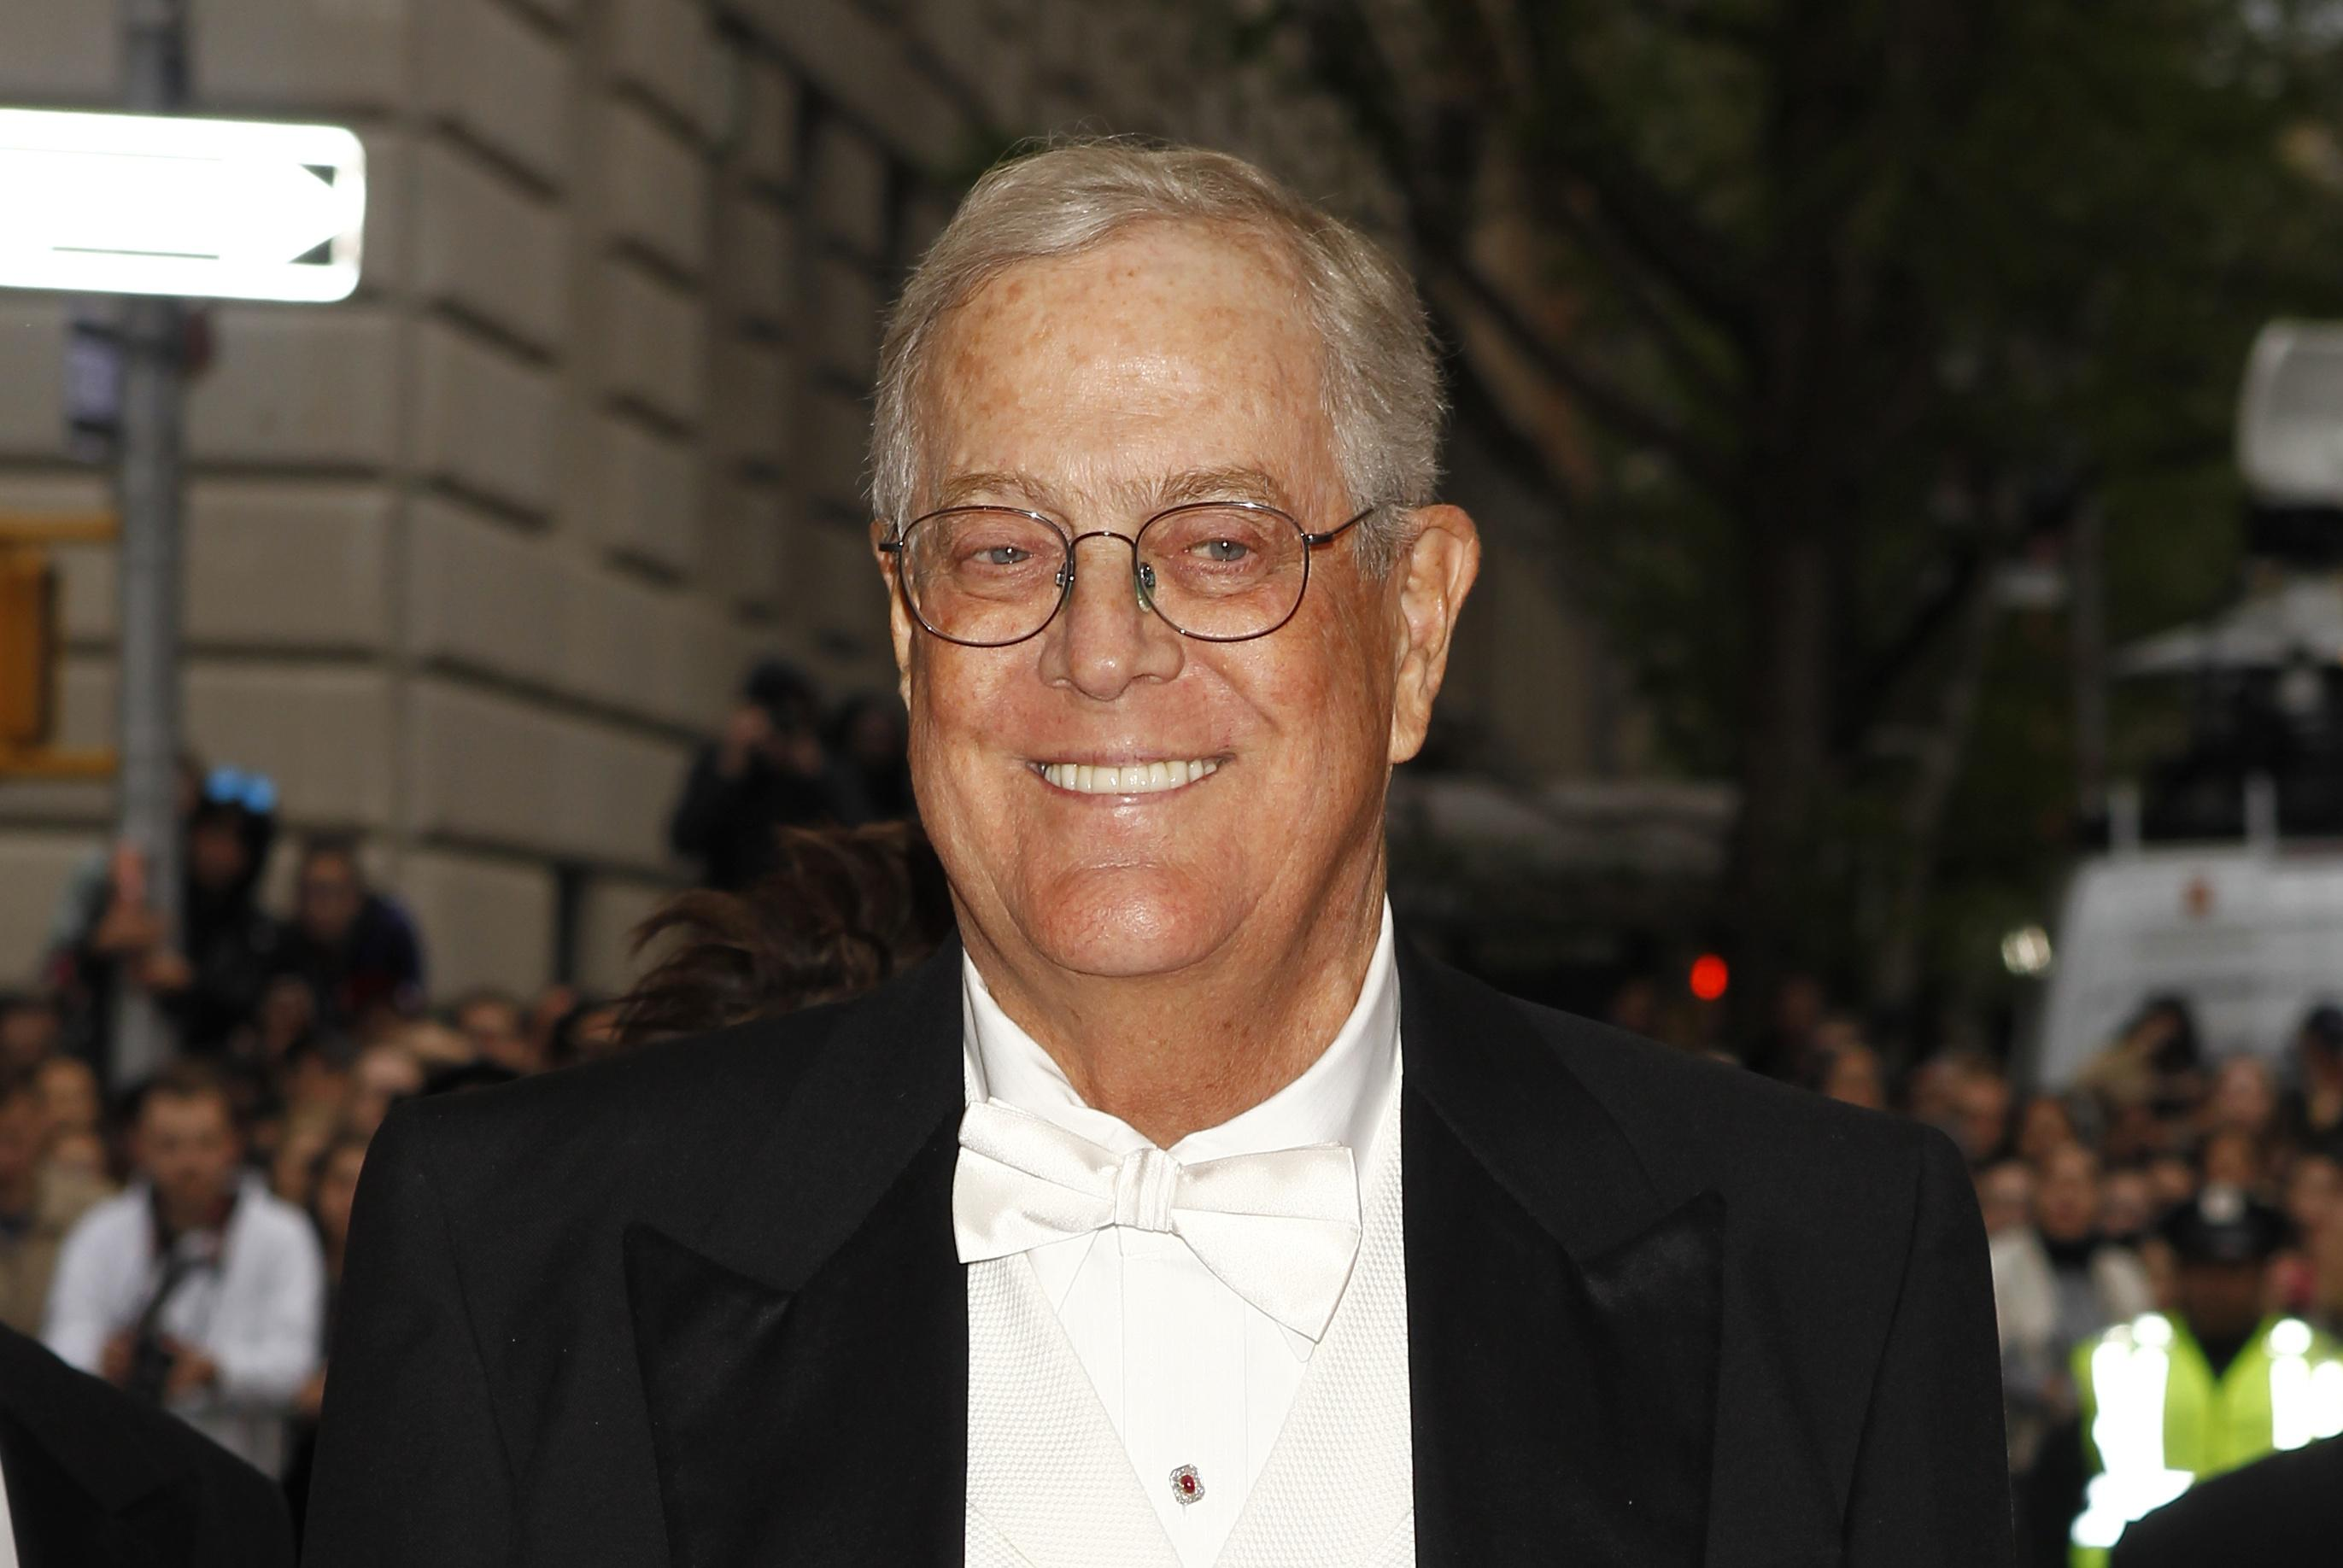 David Koch to retire due to poor health